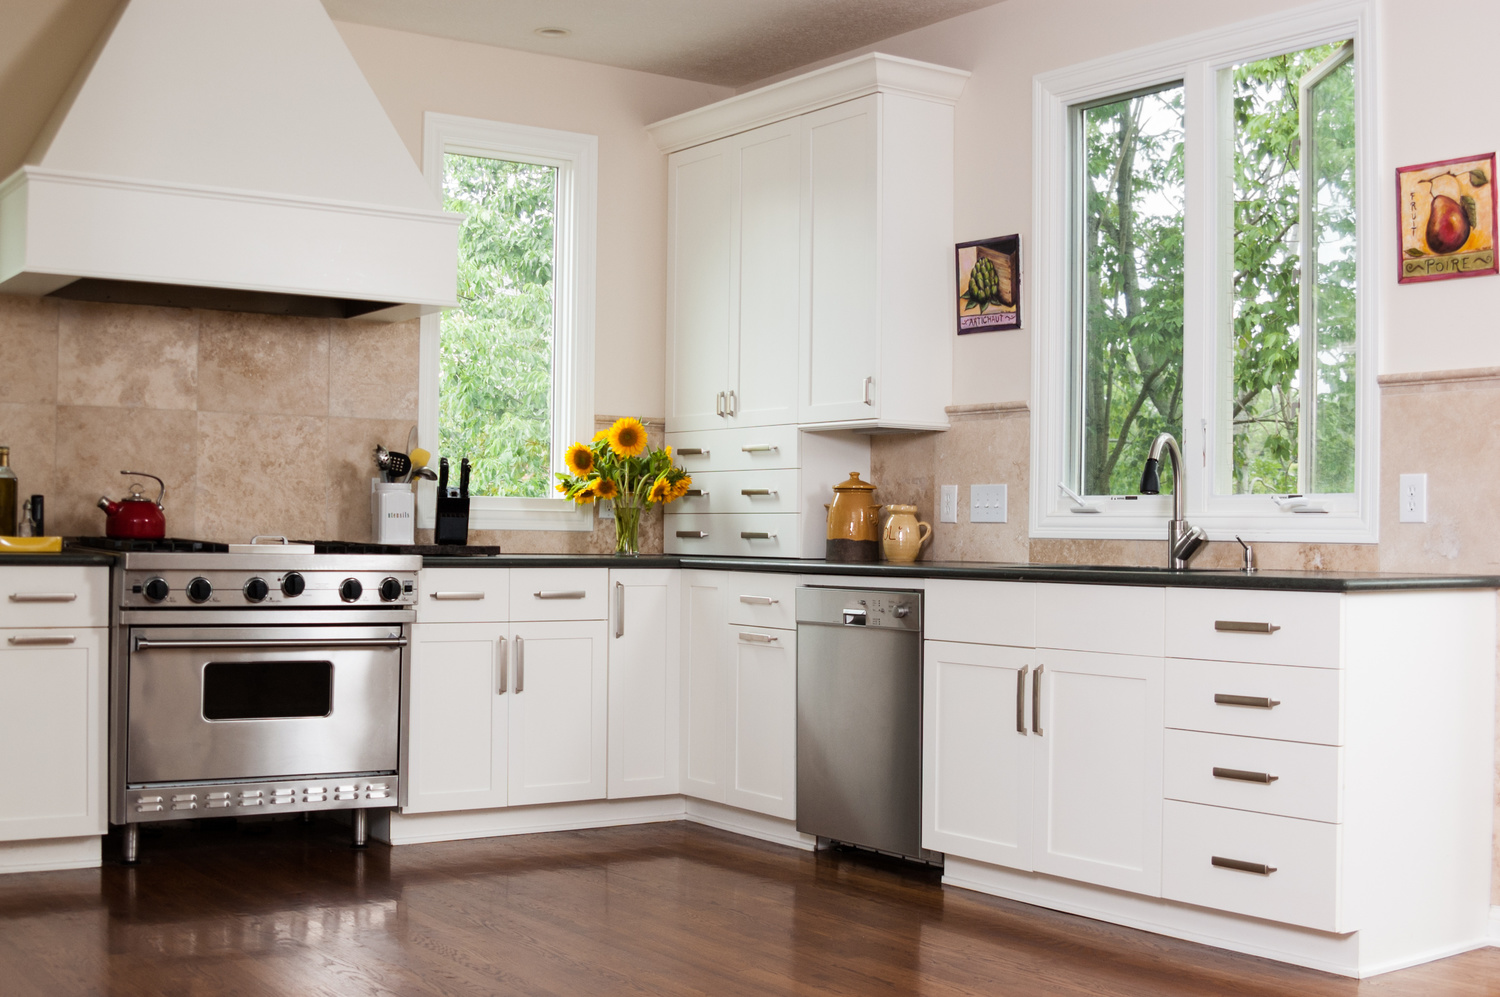 kitchen cleaning lighting 10 reasons why the is necessary for better health benefits of maintaining your clean